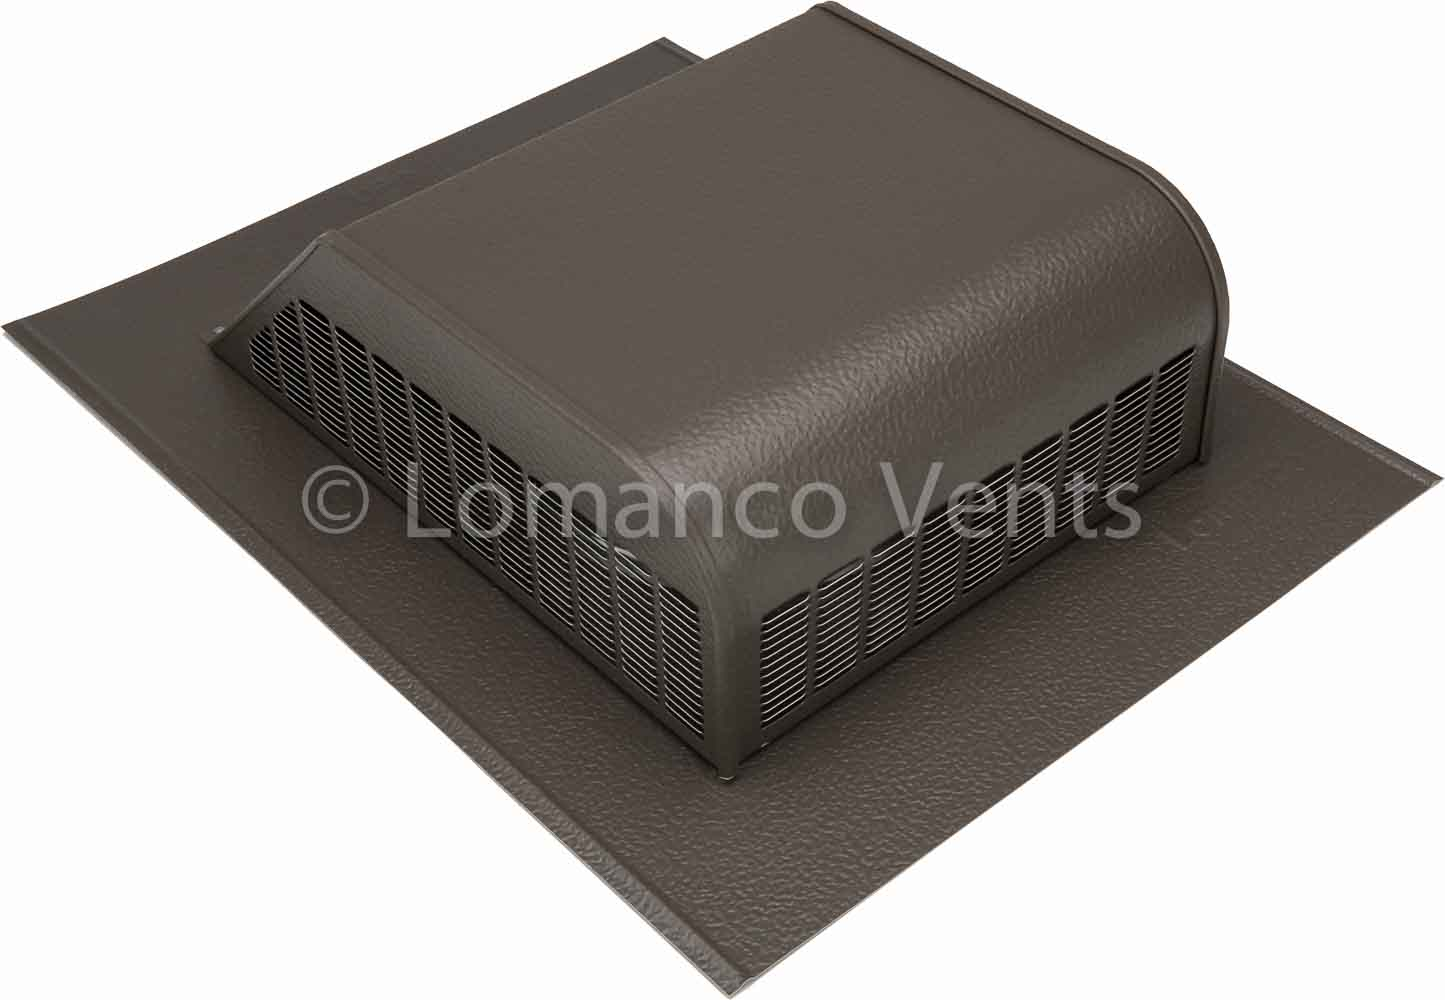 What style roof vent for range hood exhaust - 700 Series